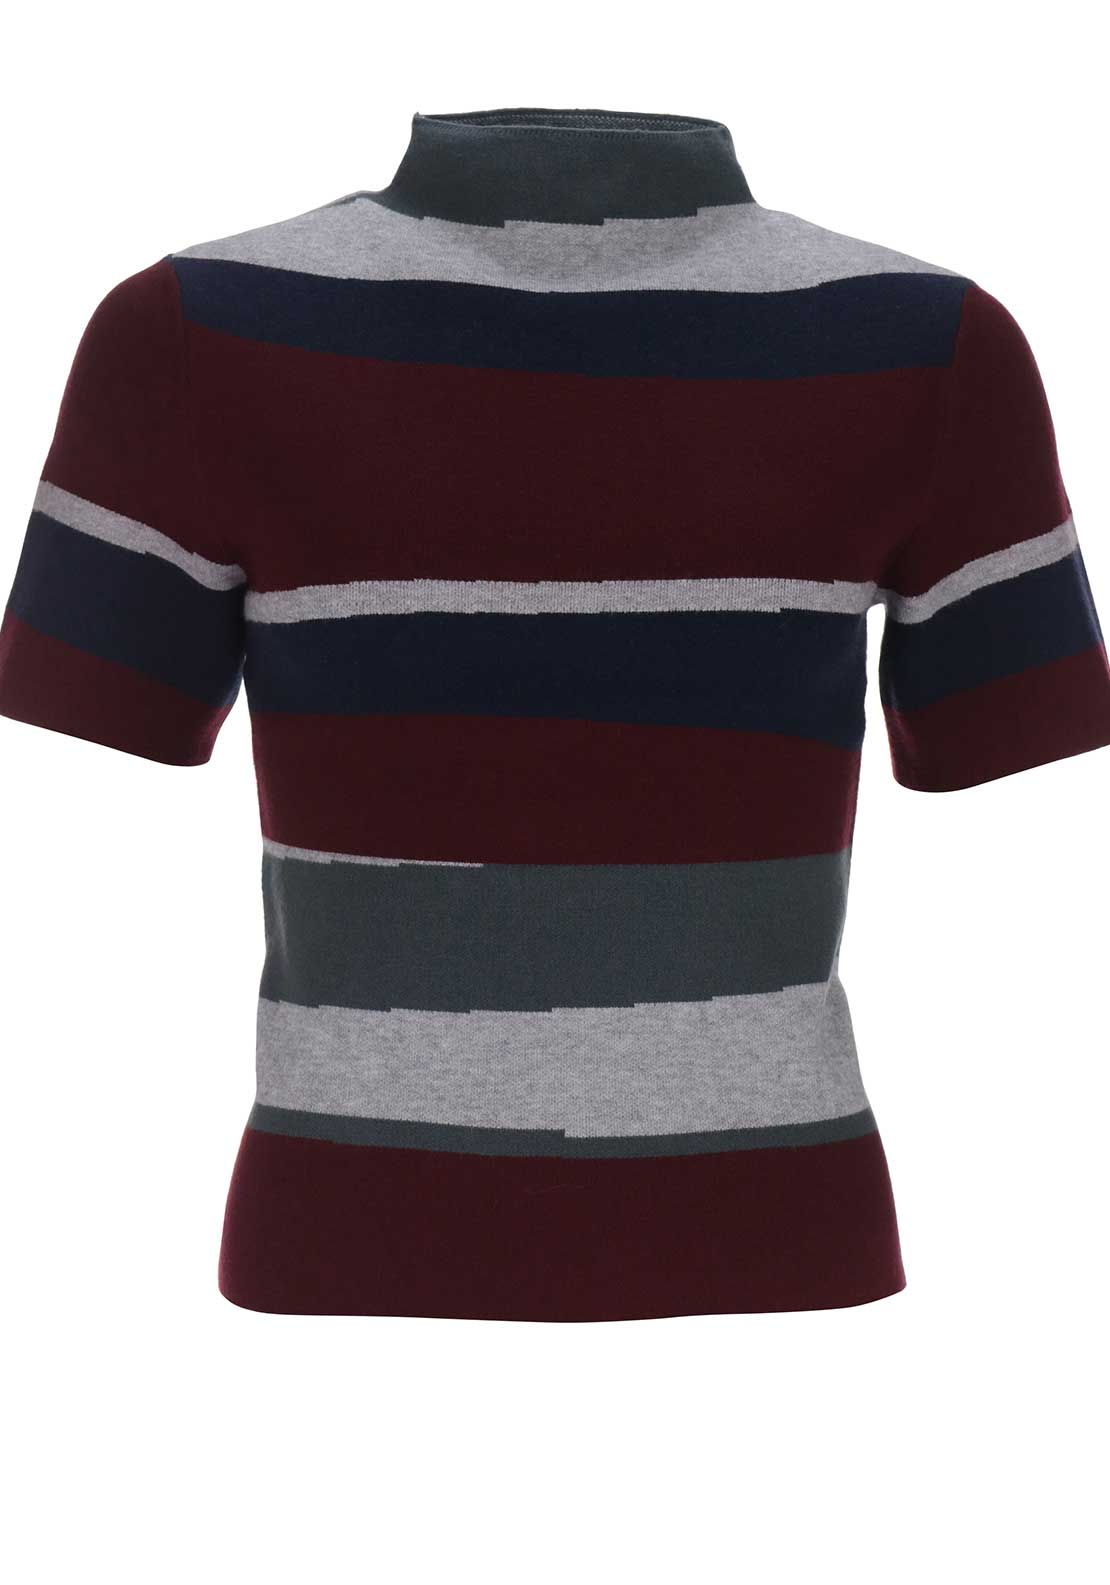 Silvian Heach Striped High Neck Top, Multi-Coloured